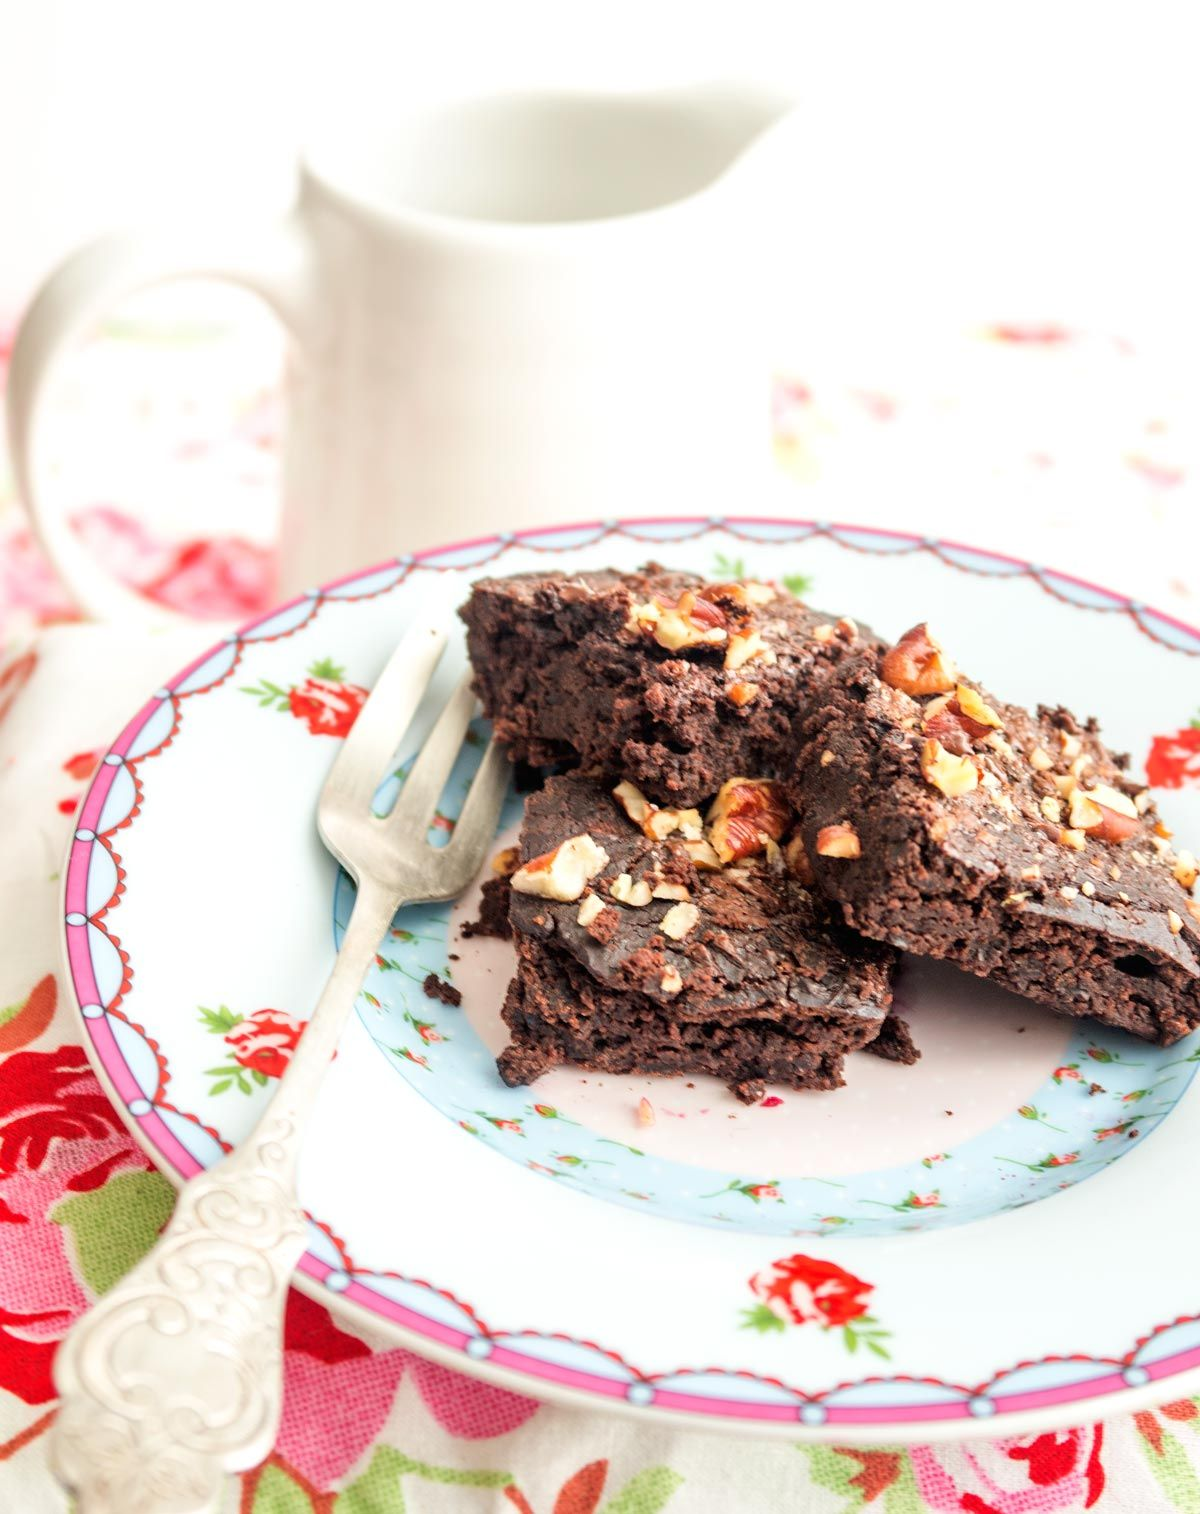 Super Leckere Rezepte Black Bean Brownies - Super Lecker, Kalorienarm ...